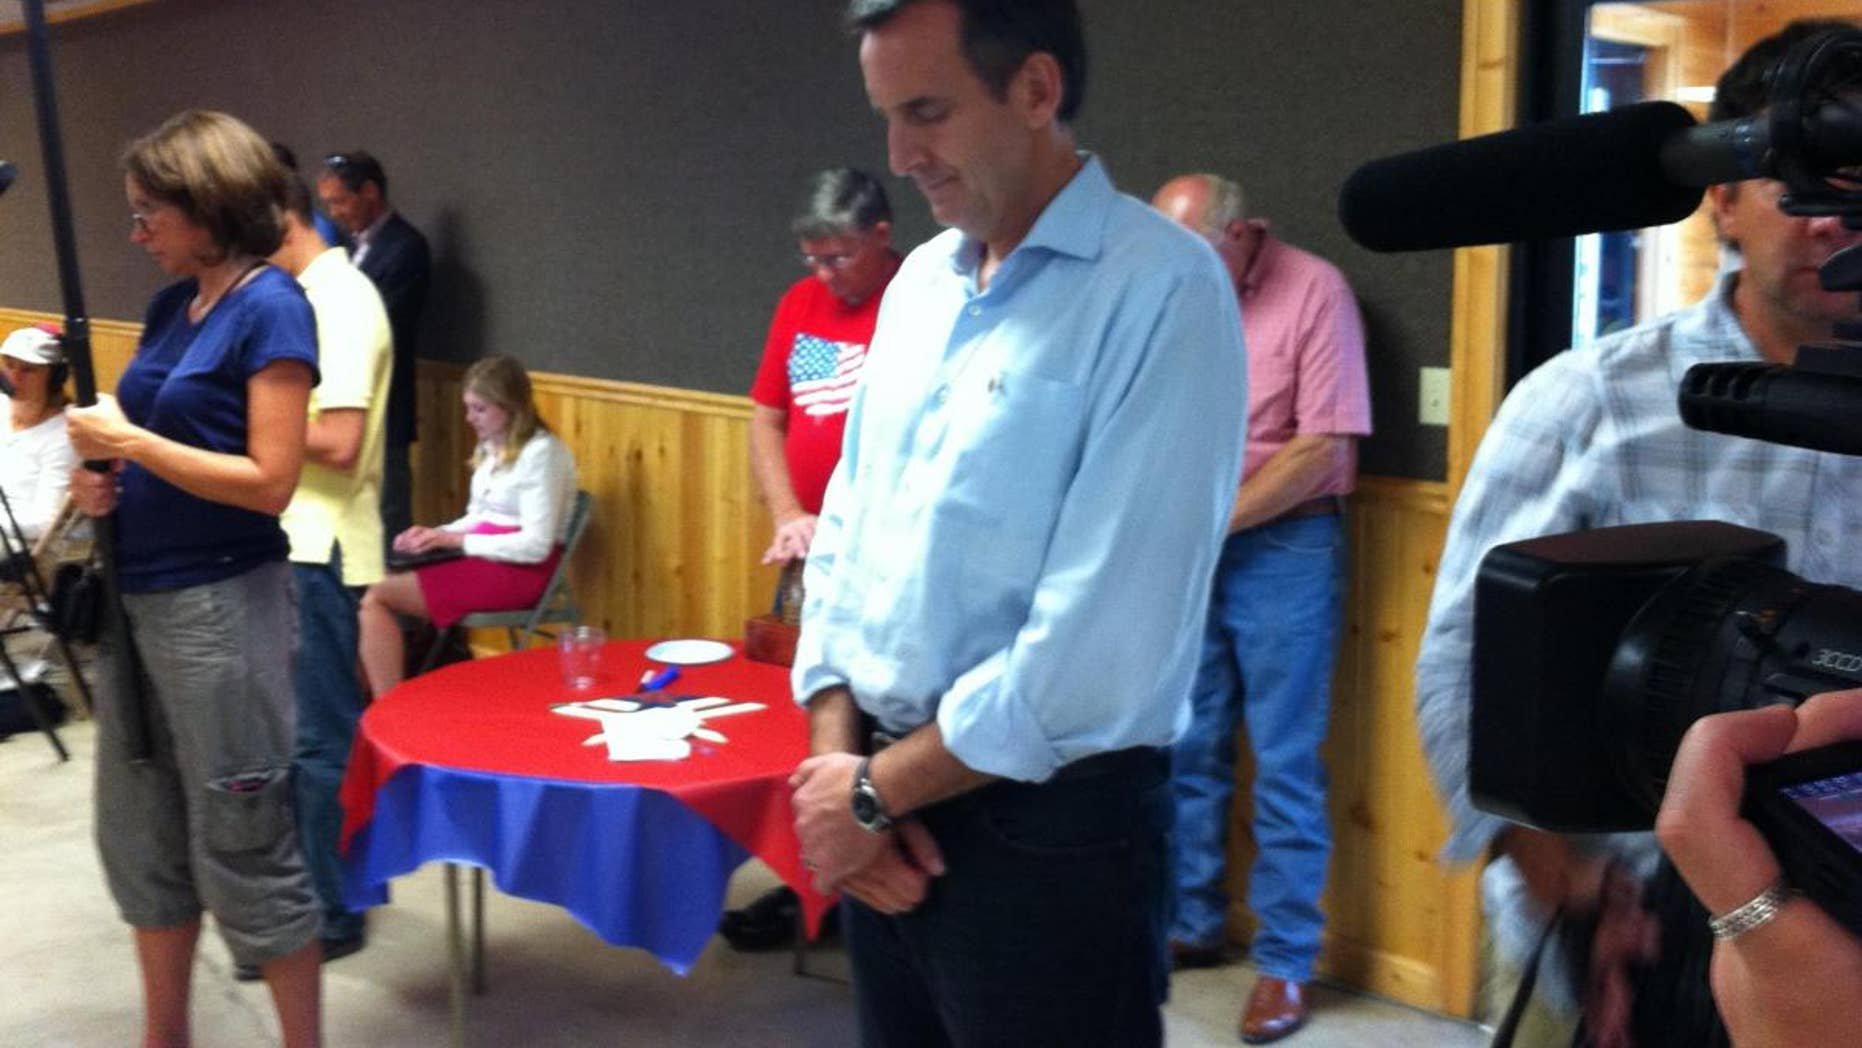 Former Minnesota Governor Tim Pawlenty stands during a prayer at a Humboldt County GOP meeting August 9. (Fox News)